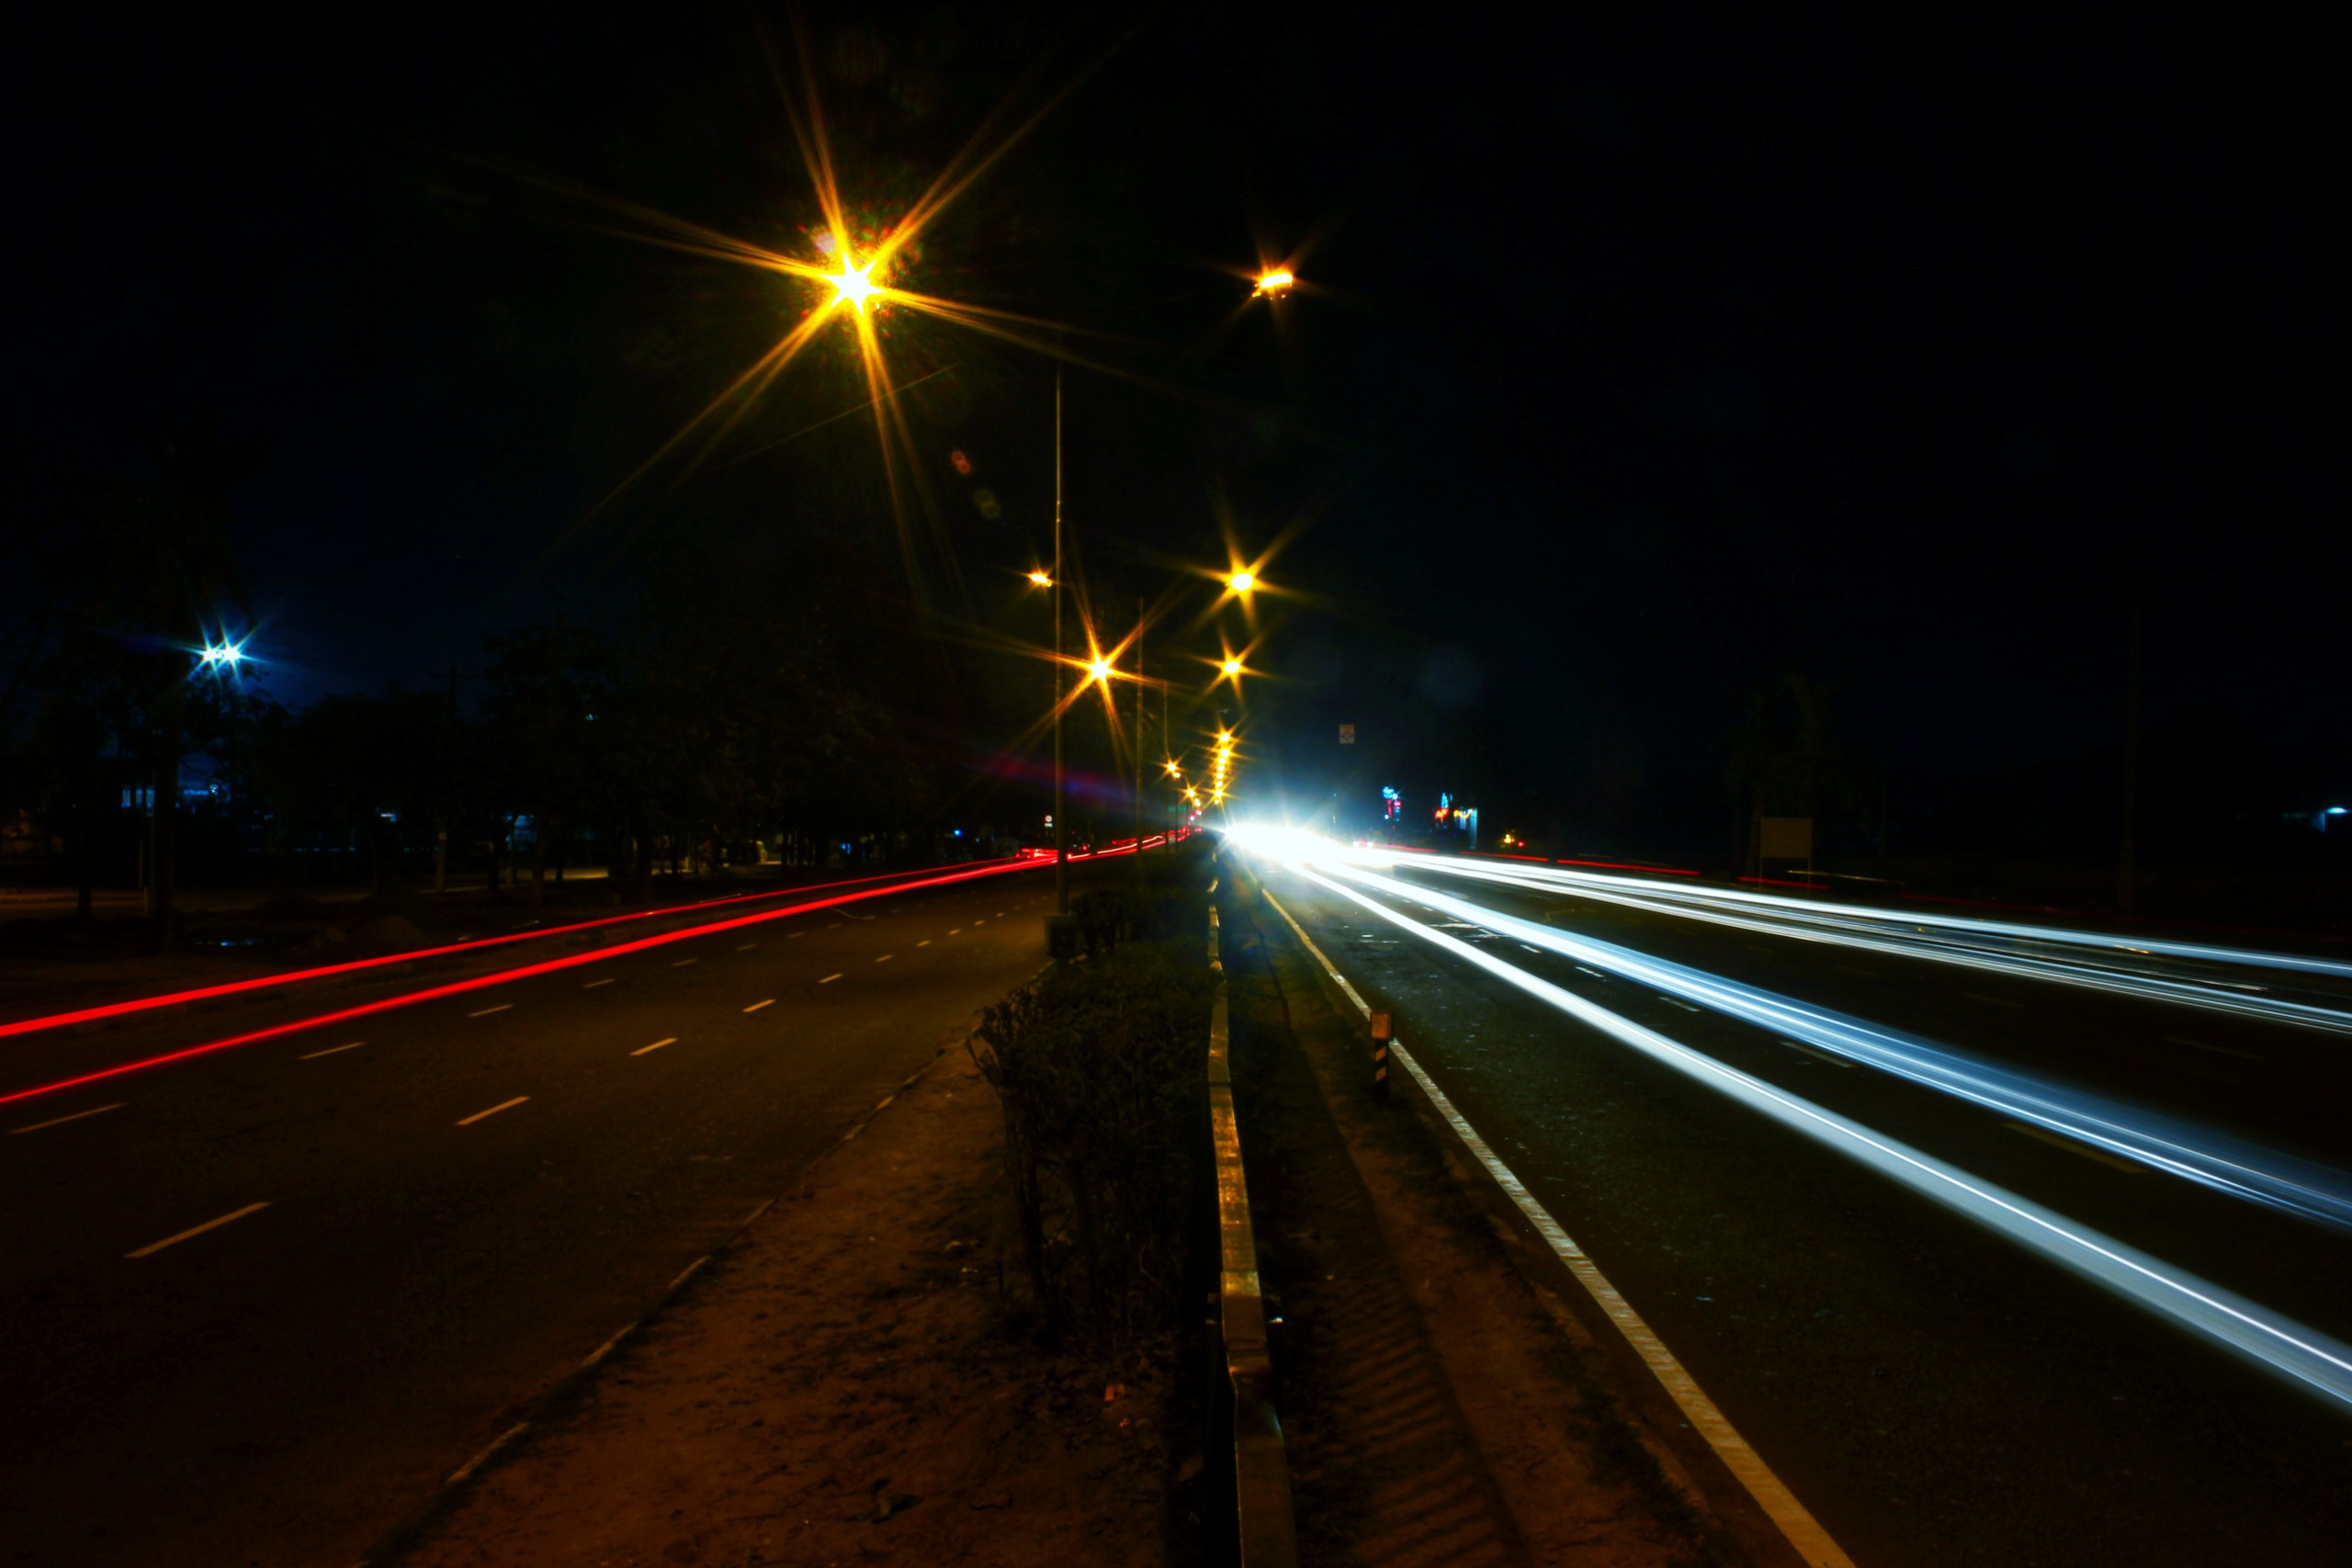 Light effect on a road